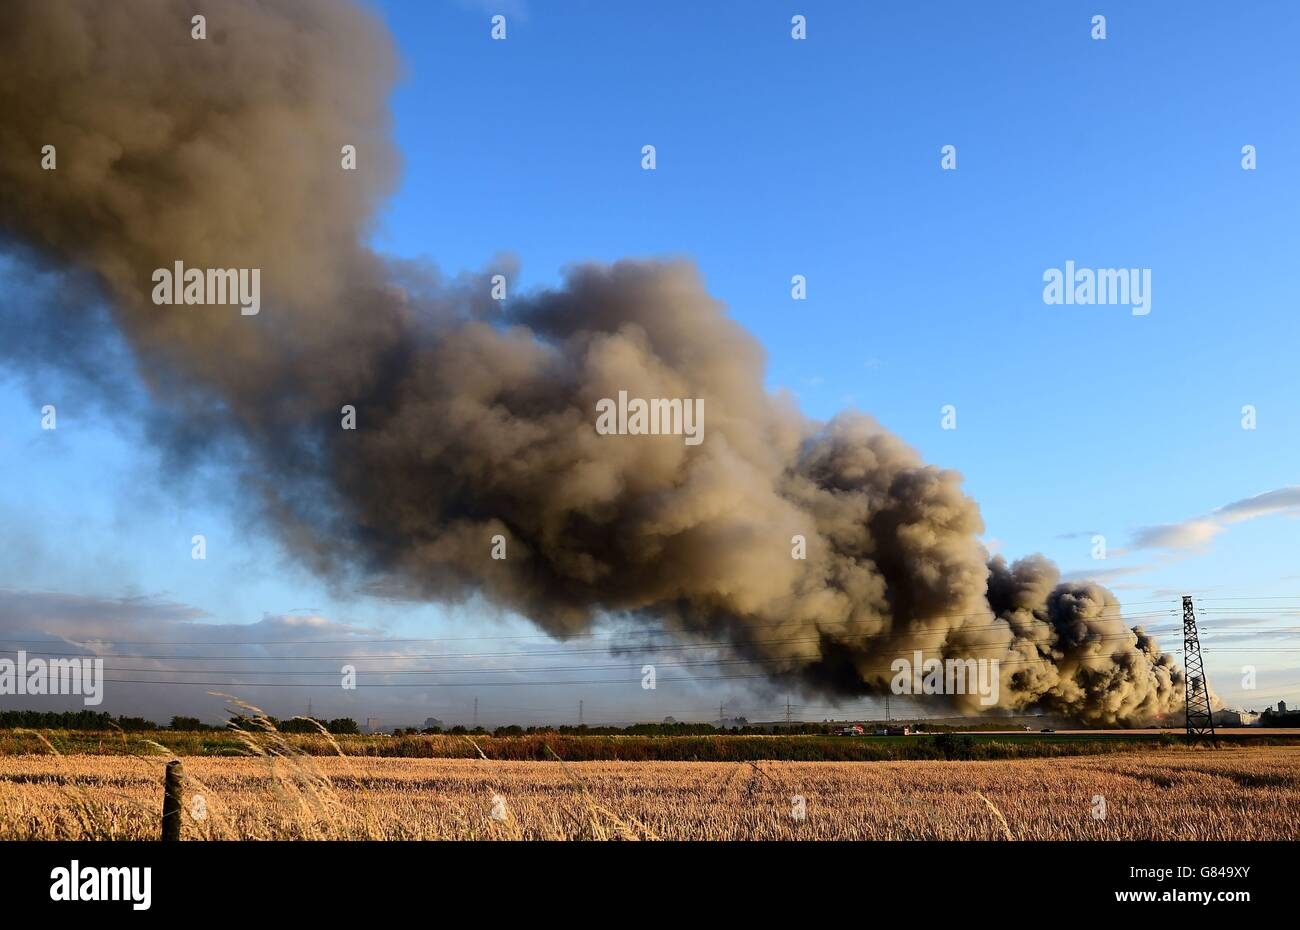 Firefighters and officers tackle a fire at a pallet yard on East Hall Lane, Rainham, Essex. Stock Photo